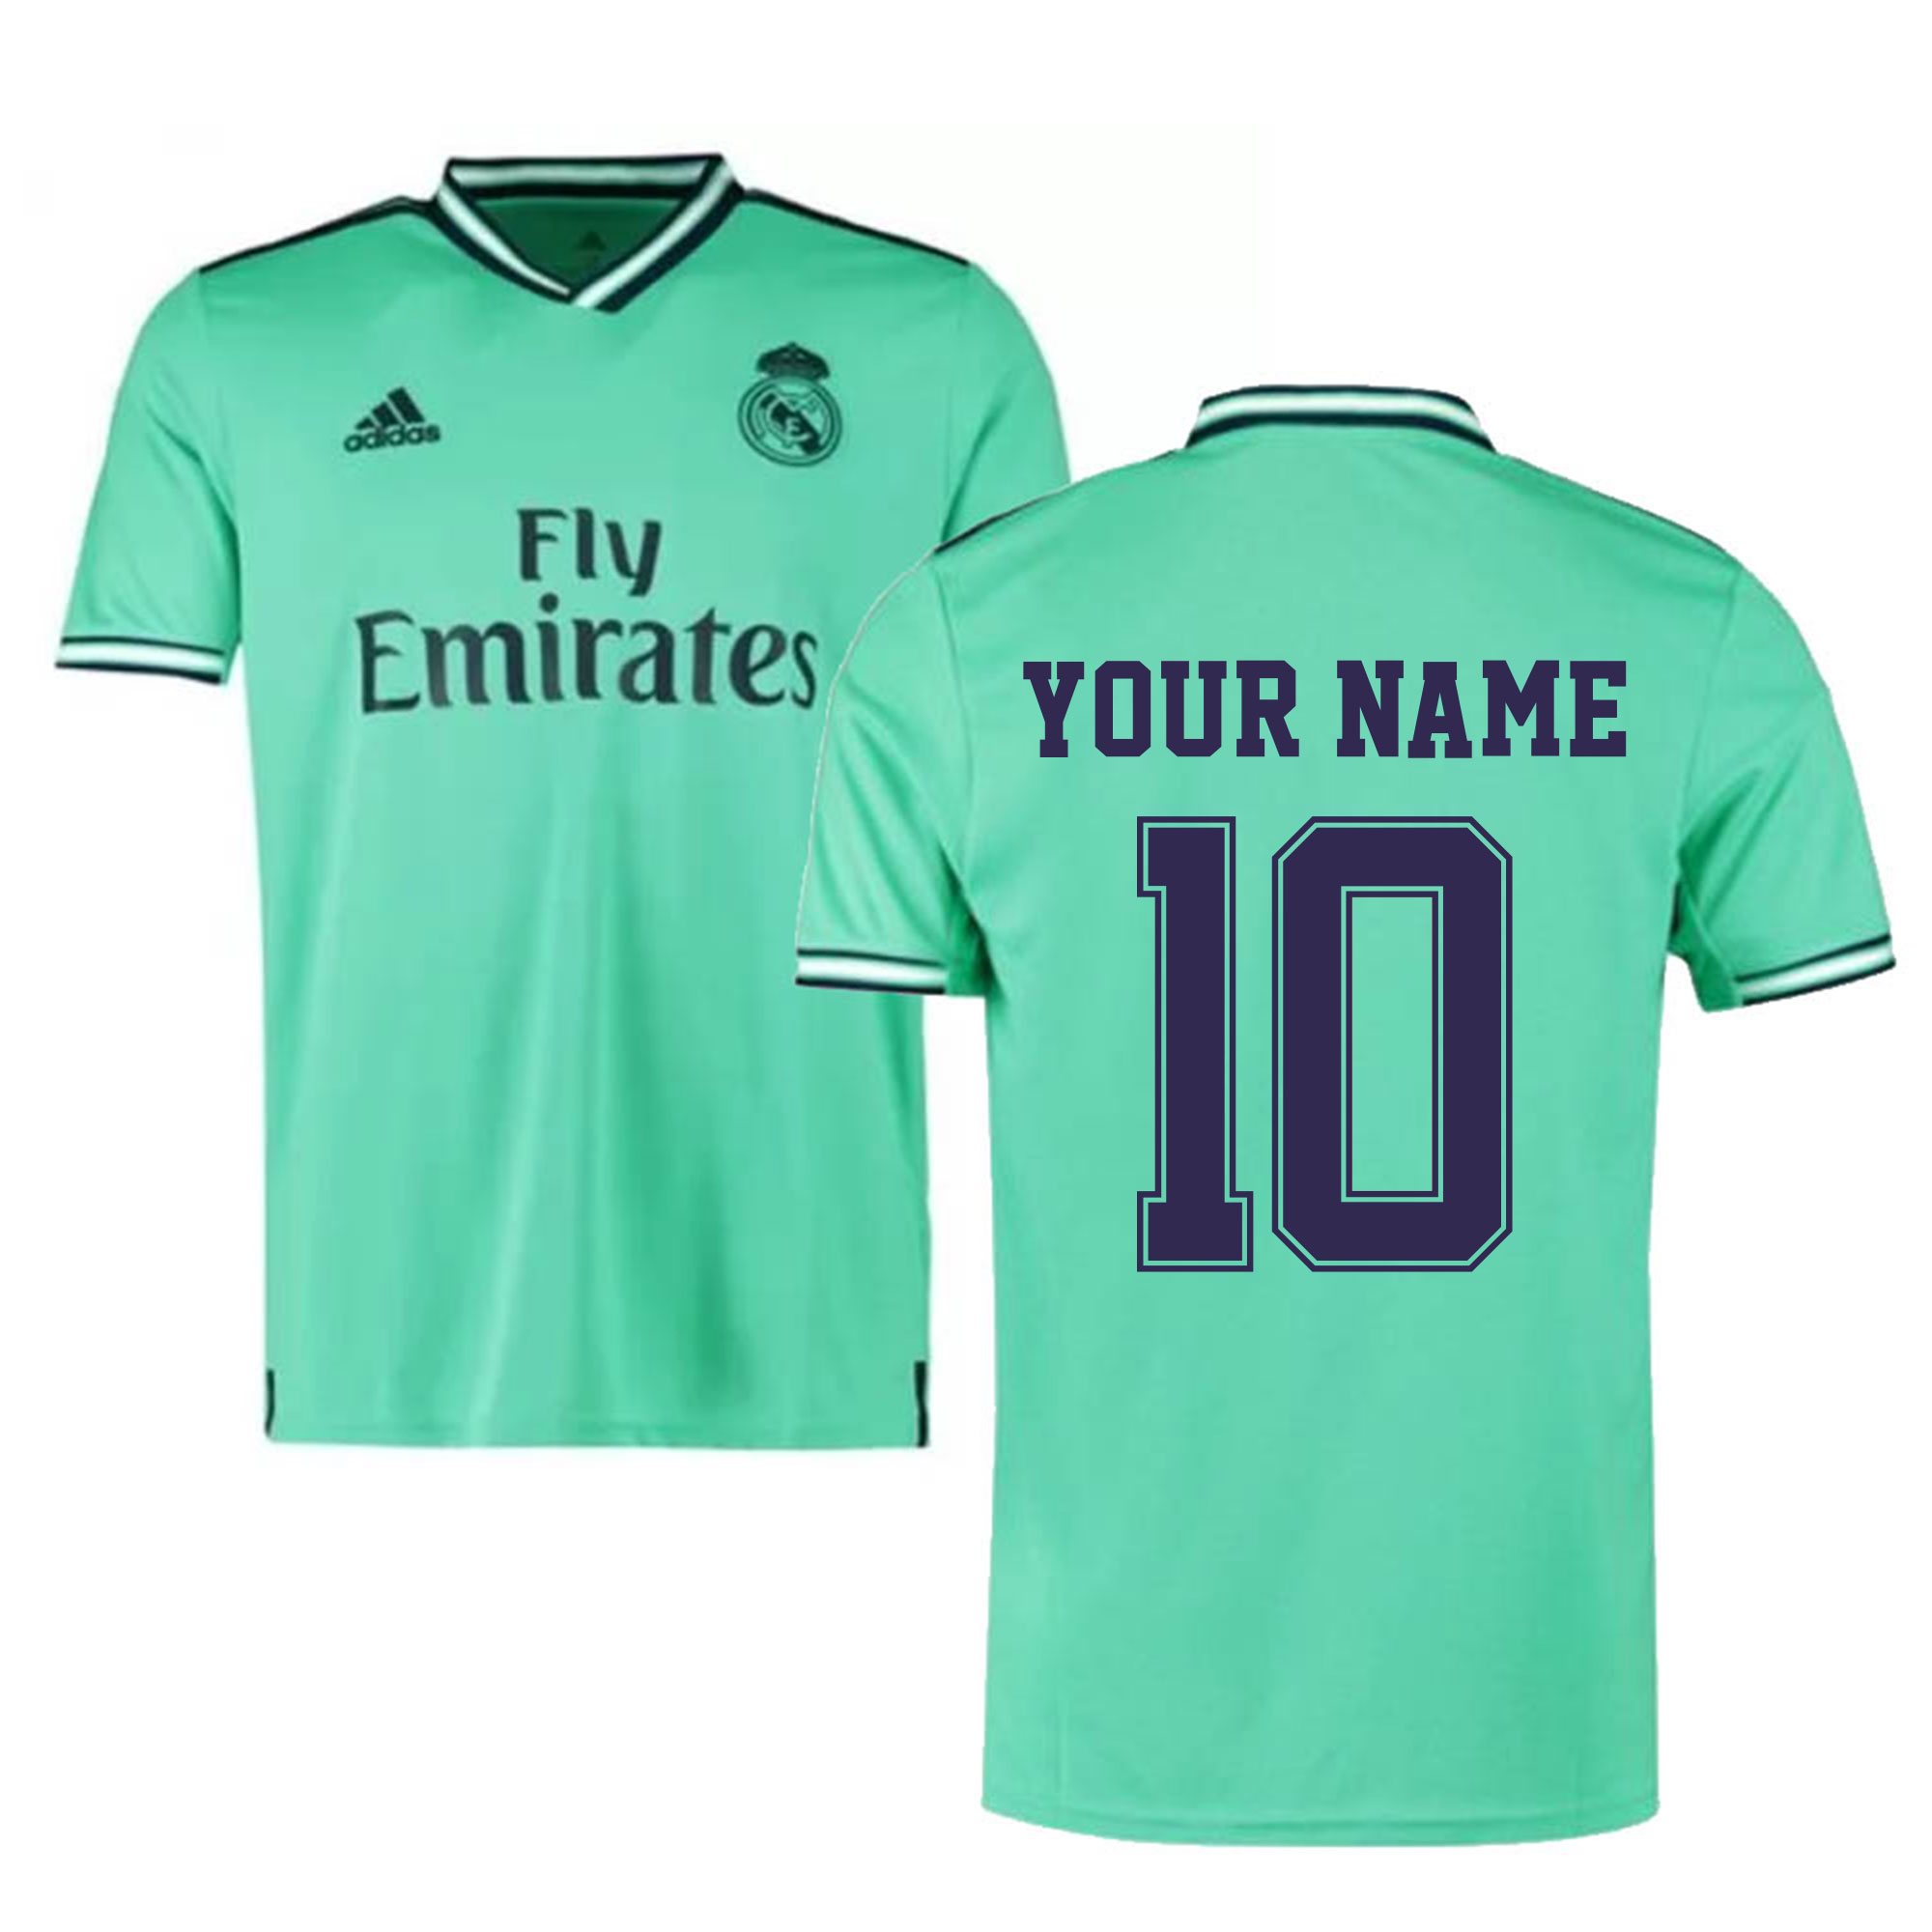 official photos 75a6a b1216 2019-2020 Real Madrid Adidas Third Football Shirt (Your Name)